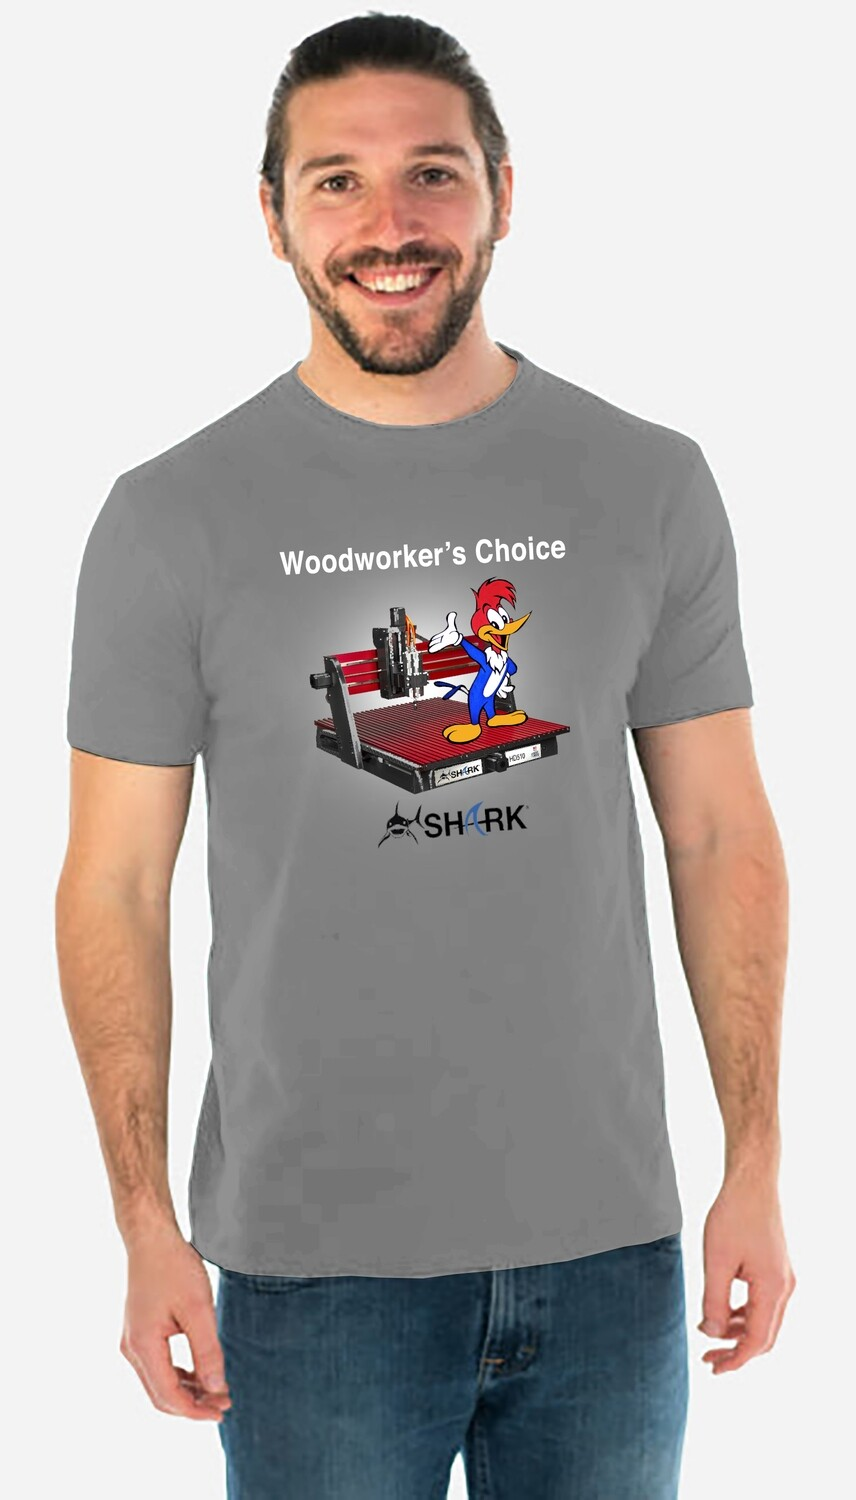 Woodworkers Choice T-Shirt